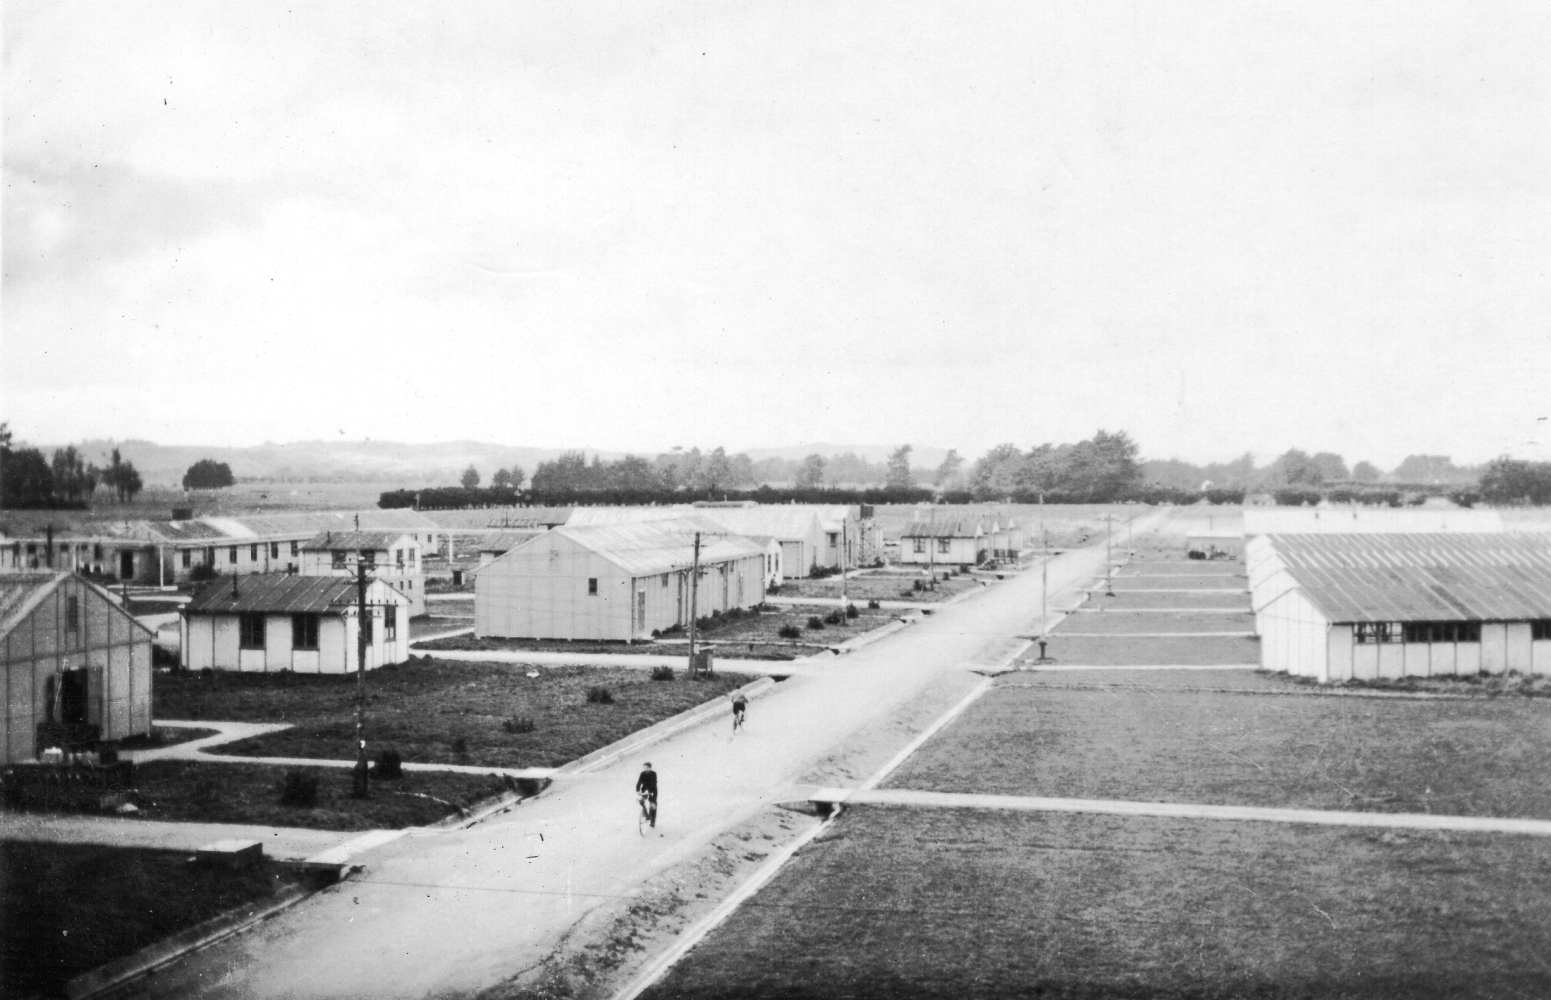 The main street  of the camp, with two boys on thier bikes. Photograph shows how isolated the camp was.